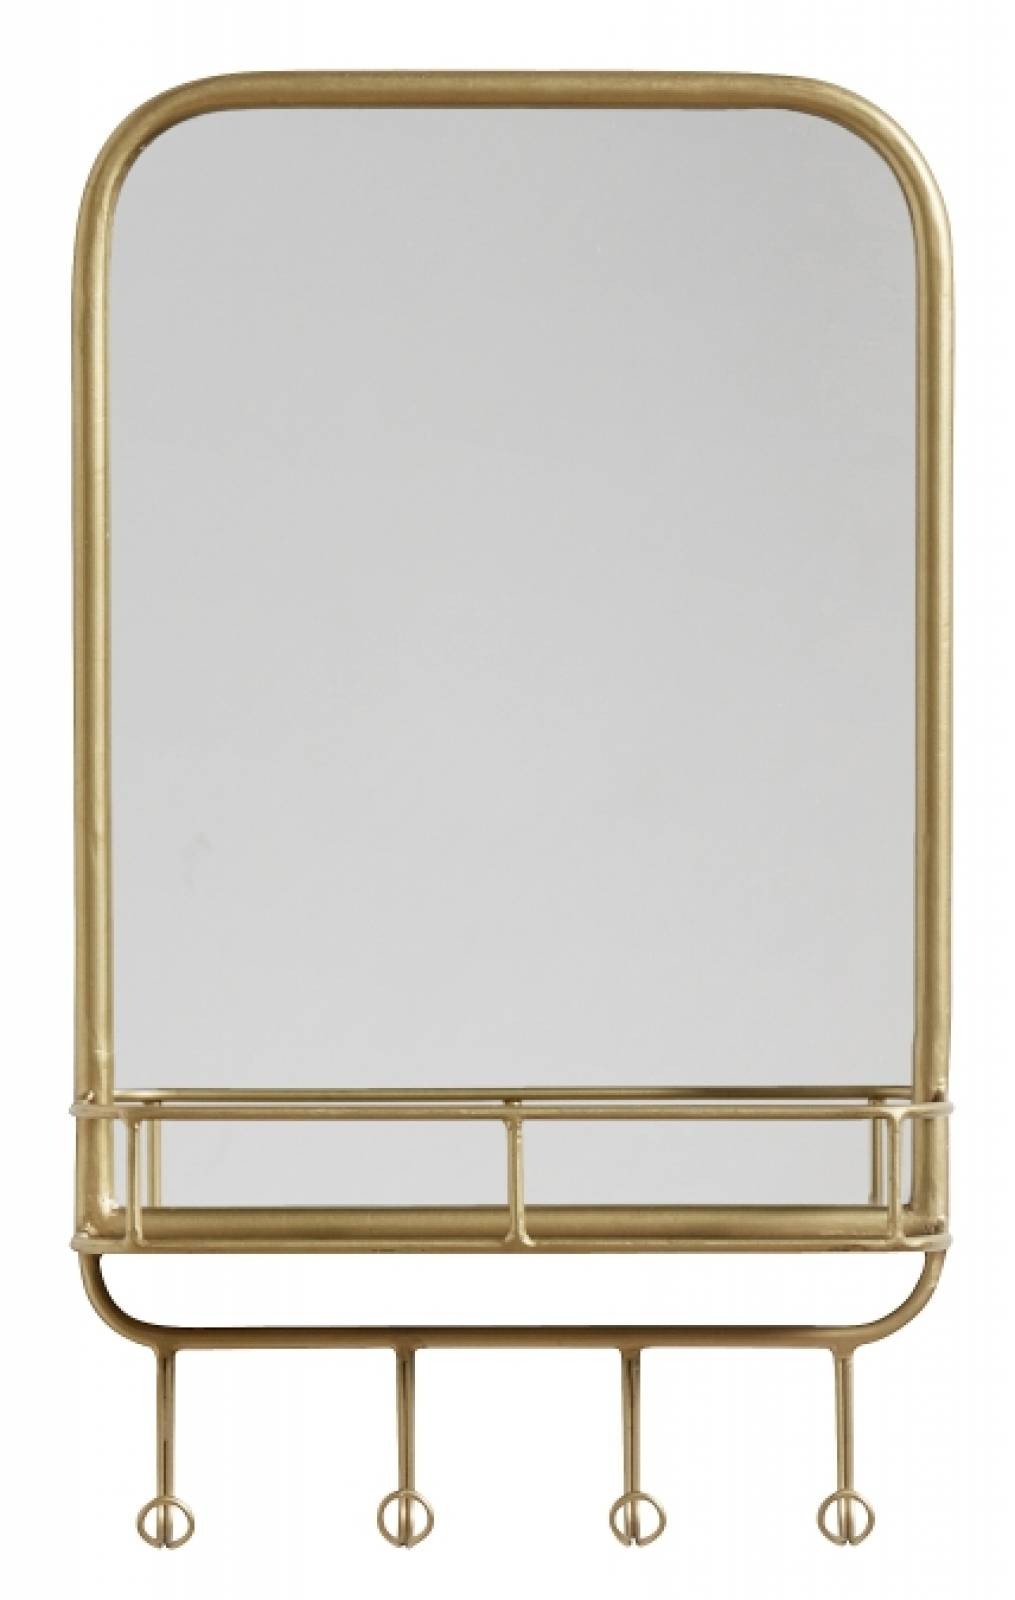 Gold Mirror With Hooks